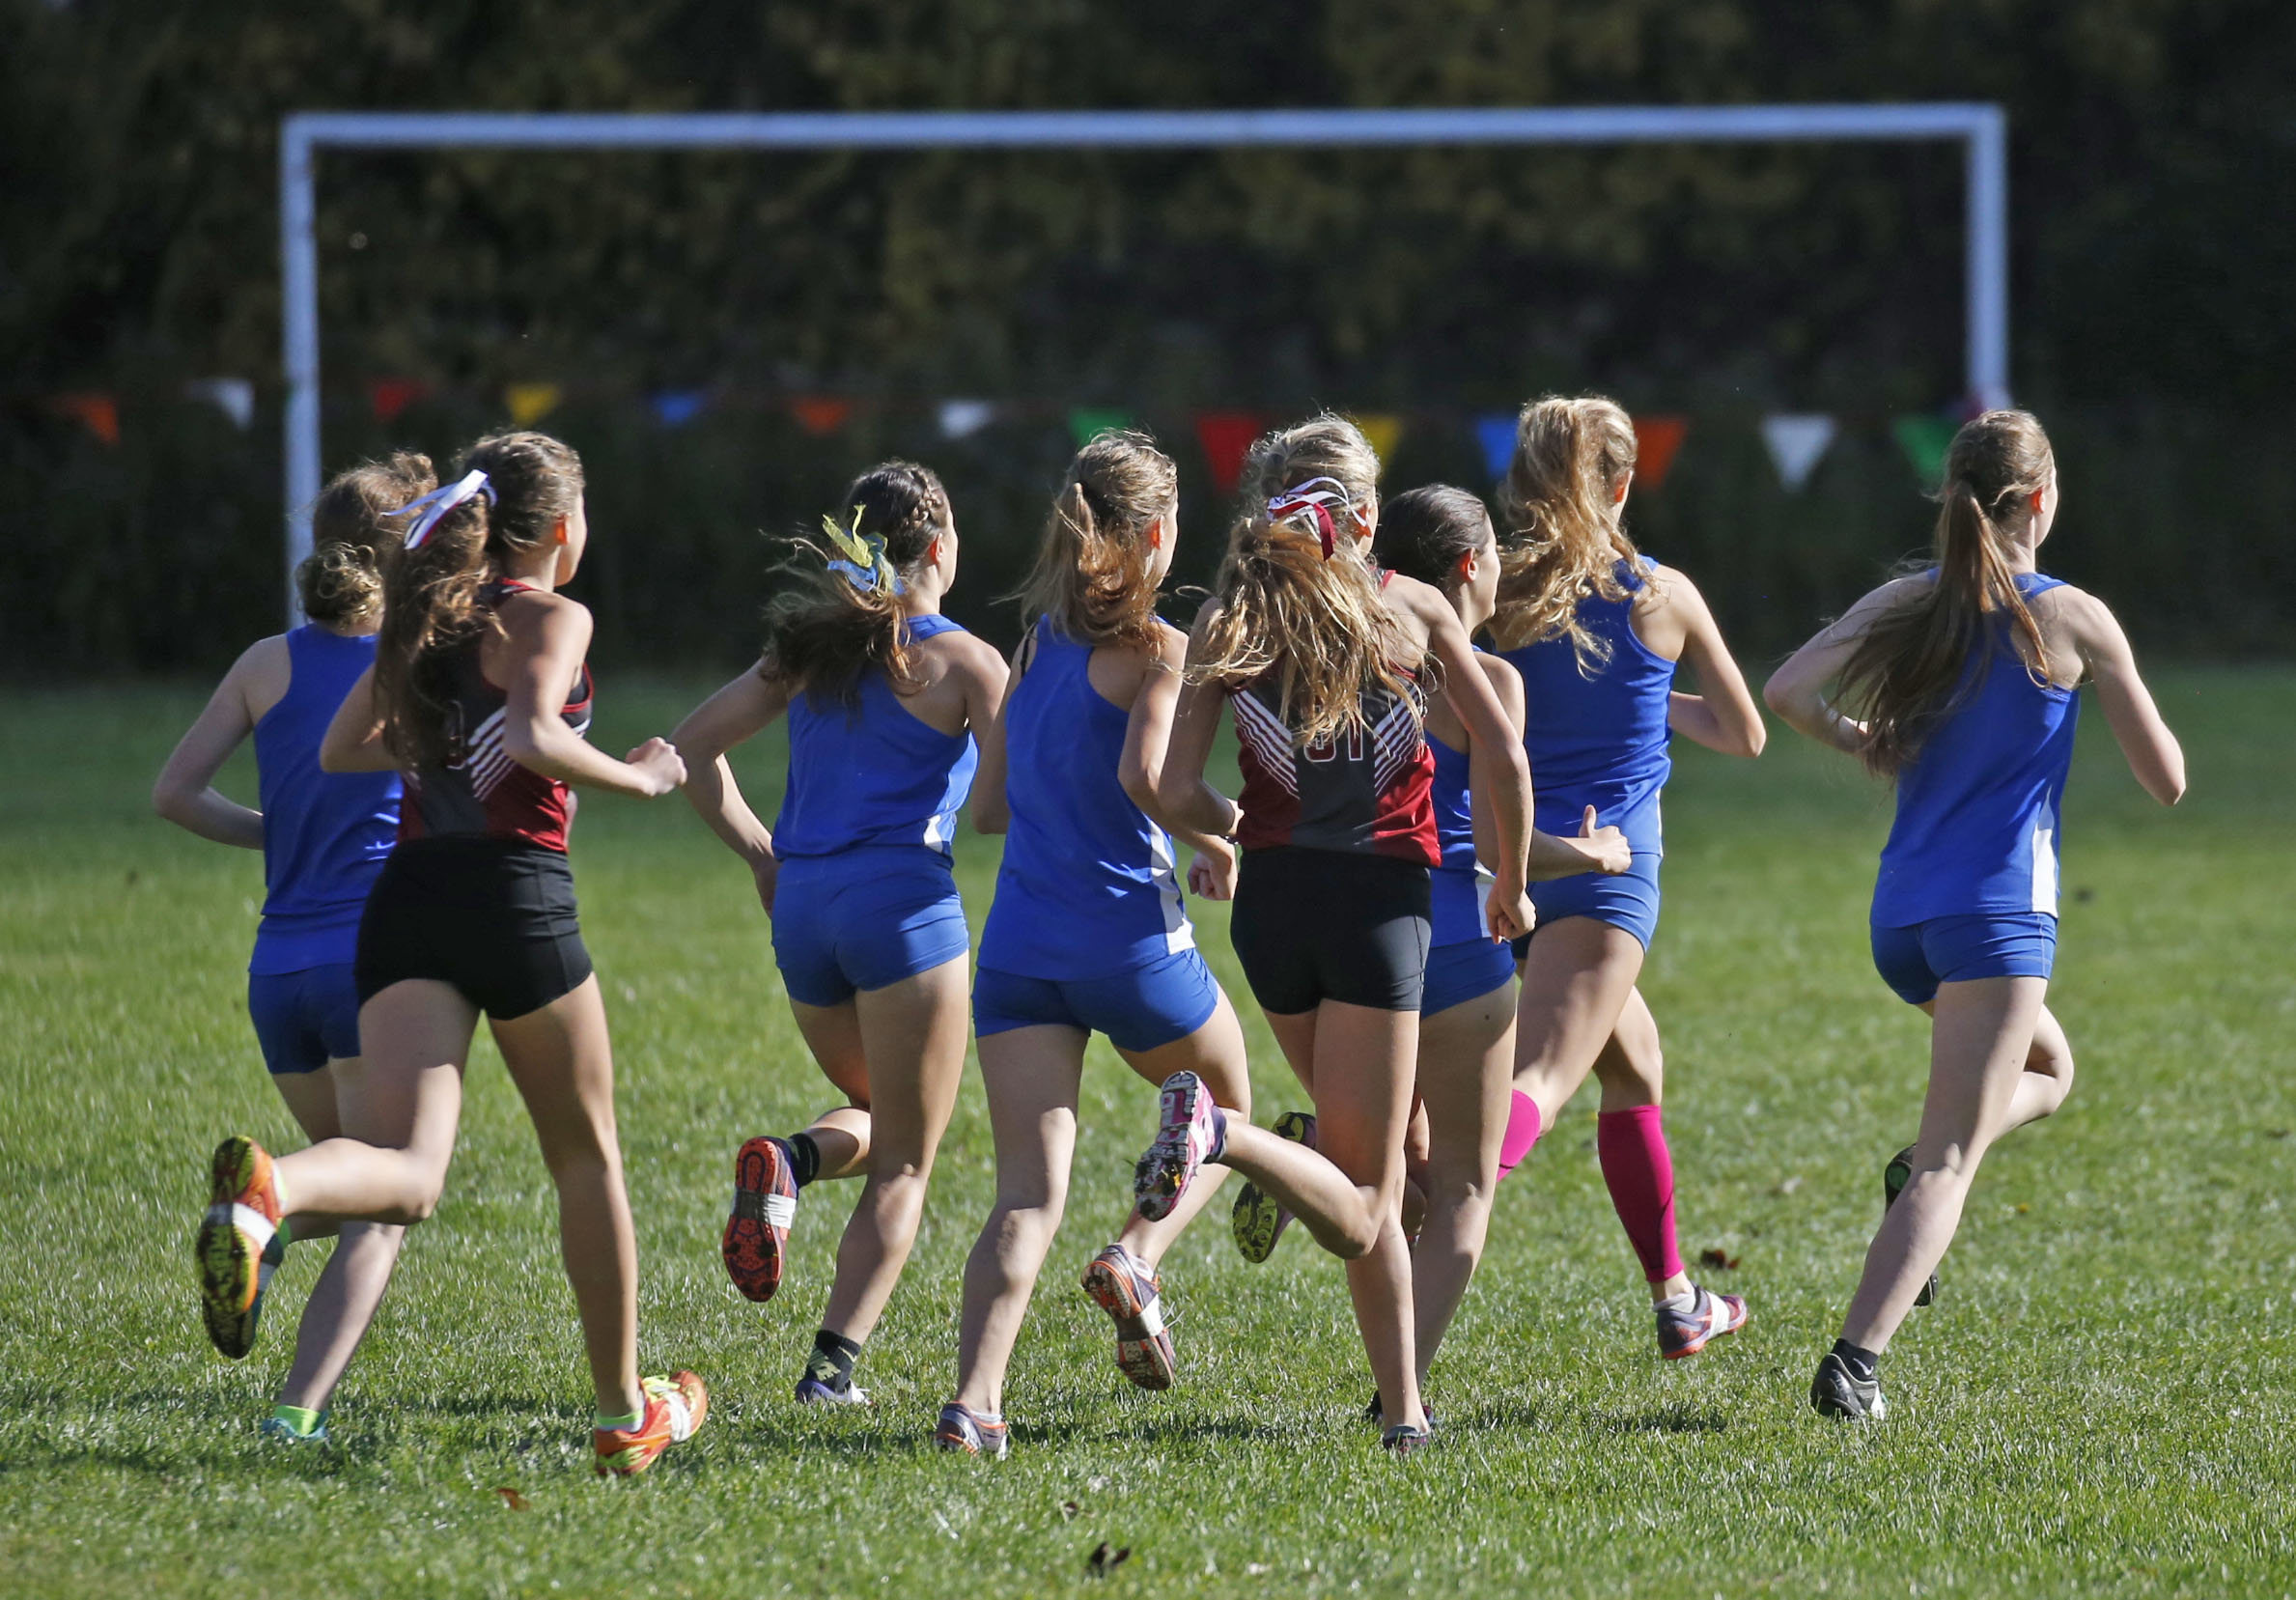 The start of the Class C race at the Section VI Cross Country cross country meet at Beaver Island State Park in Grand Island on Nov. 4, 2016.  (Robert Kirkham/Buffalo News)